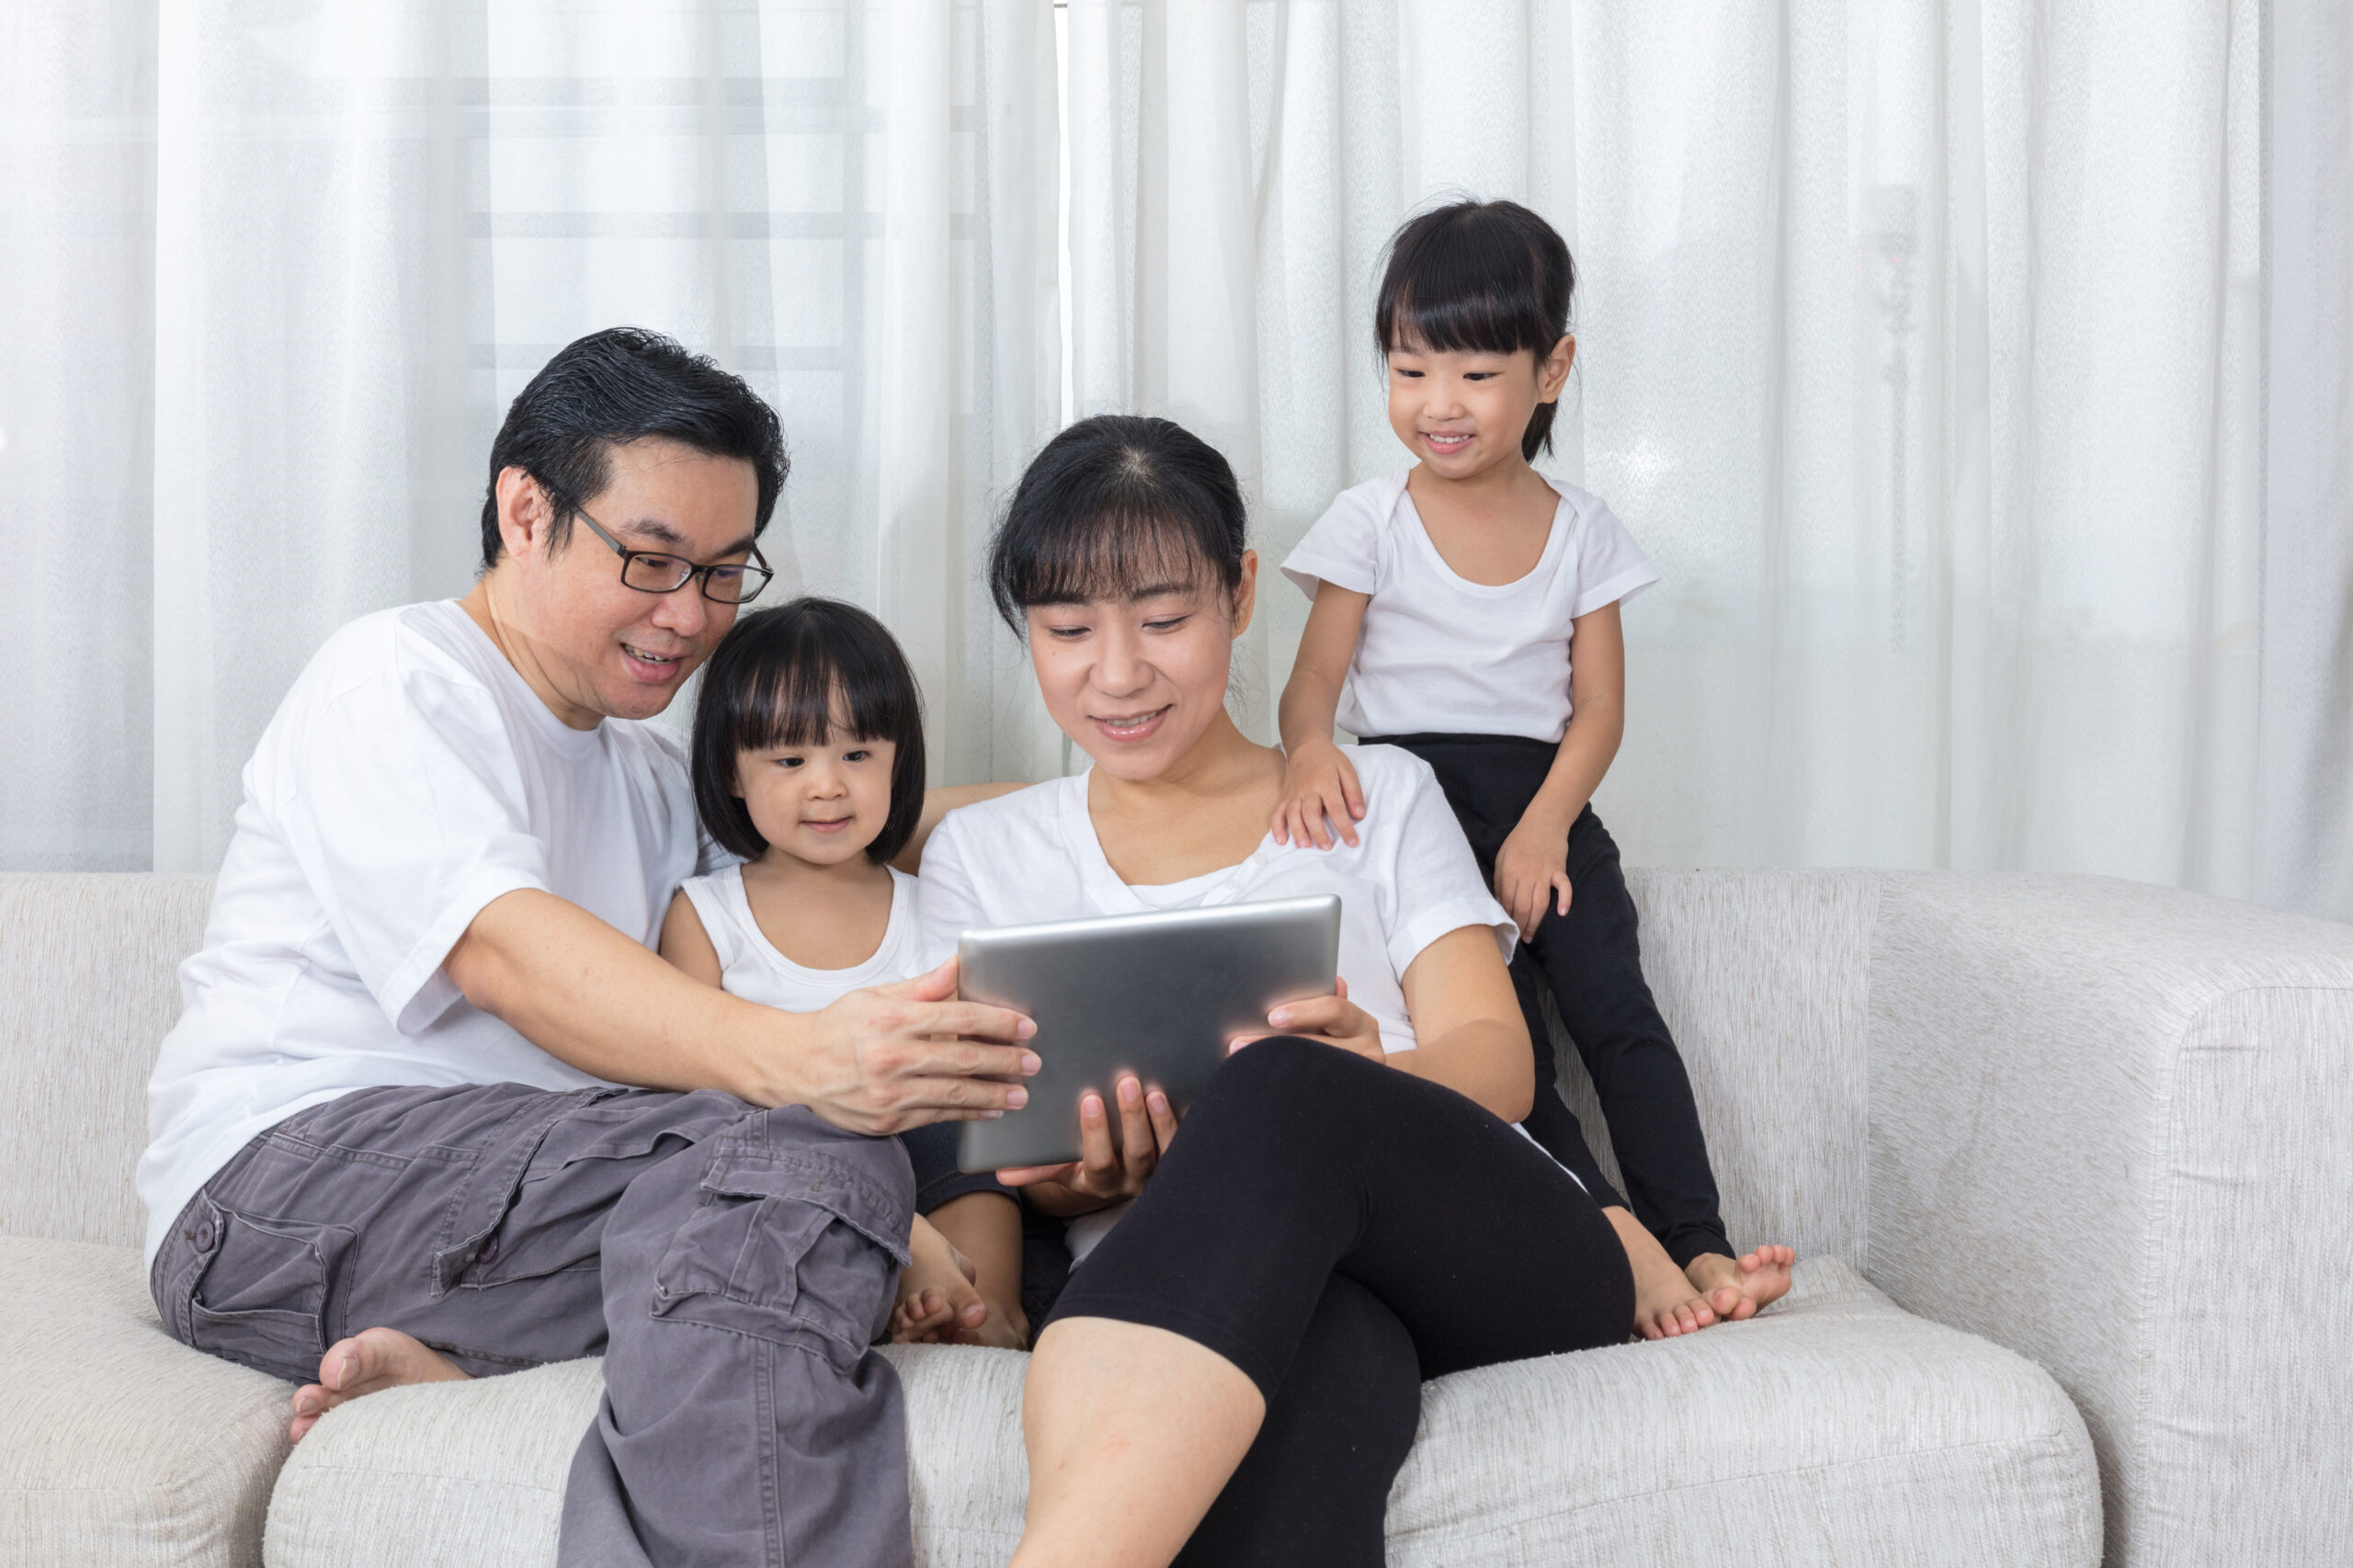 Happy Asian Chinese family using tablet on the couch in the living room at home.